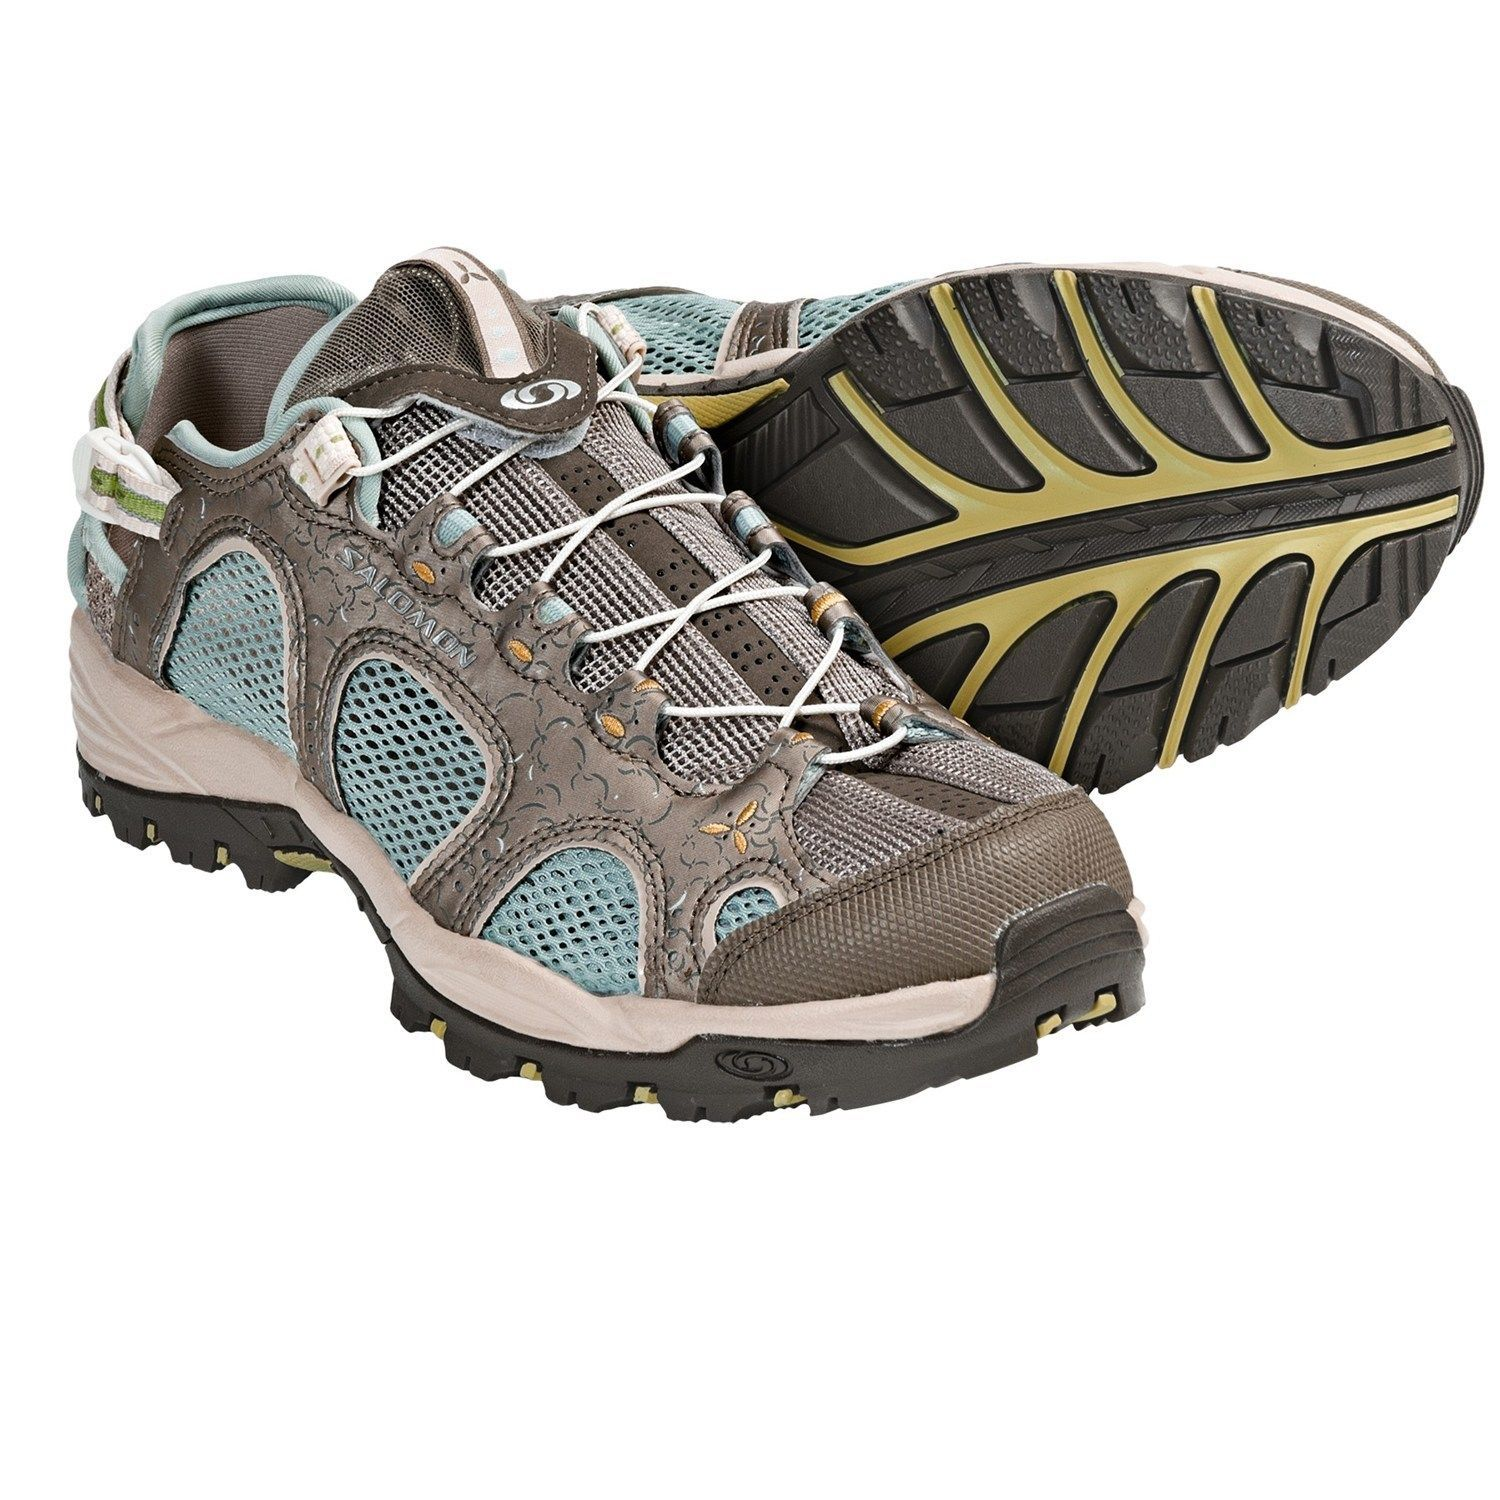 6c99ec41605 Women s Salomon Techamphibian 2 Mat Multisport Water Shoes US 11 Medium